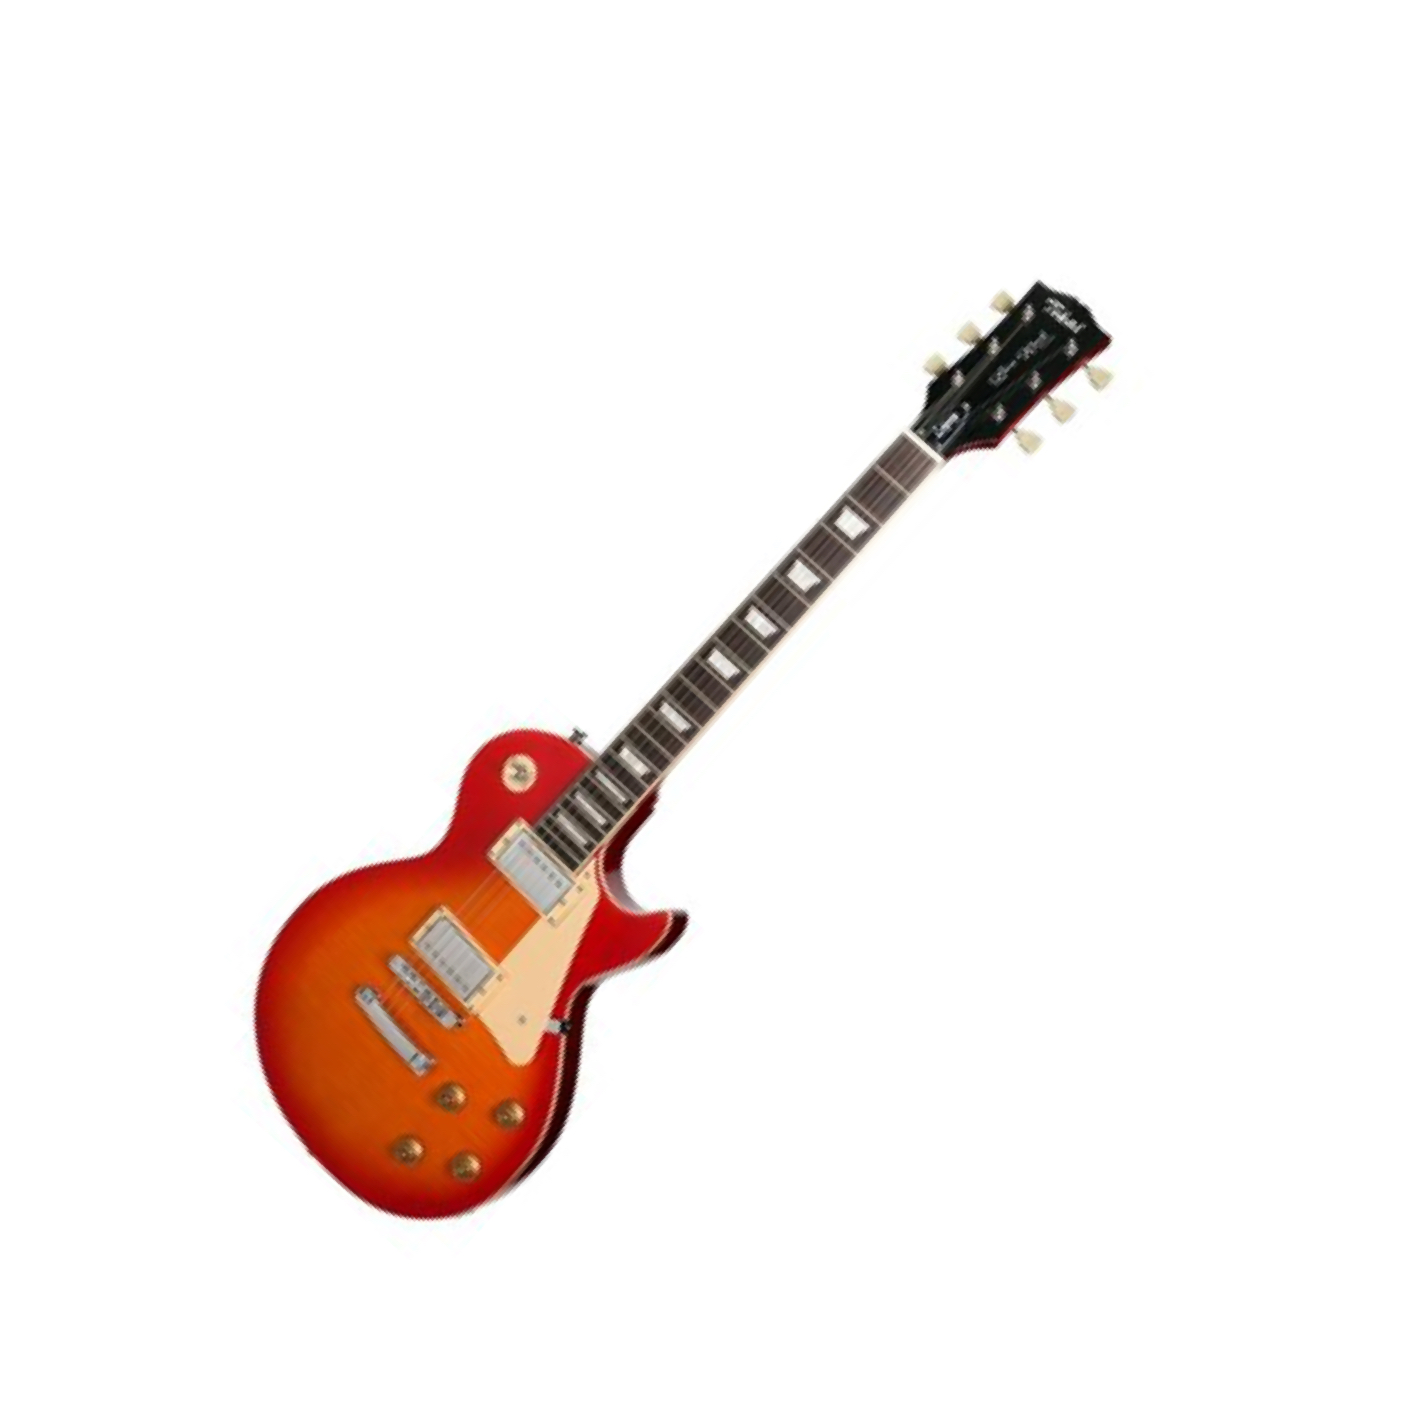 Tokai Legacy Single Cutaway Cherry Sunburst